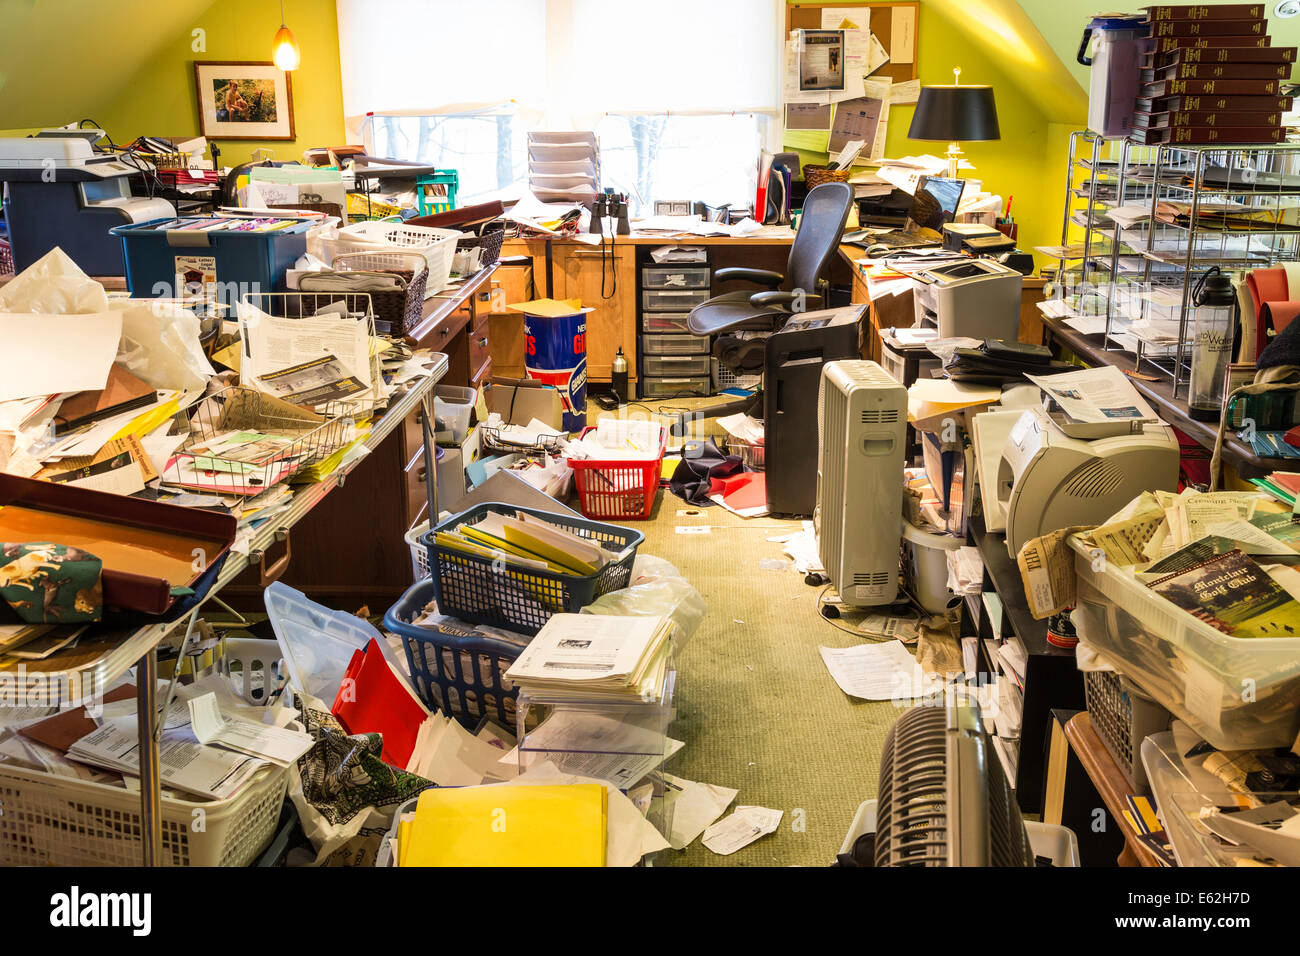 Messy Home Office, USA Stock Photo, Royalty Free Image: 72586849